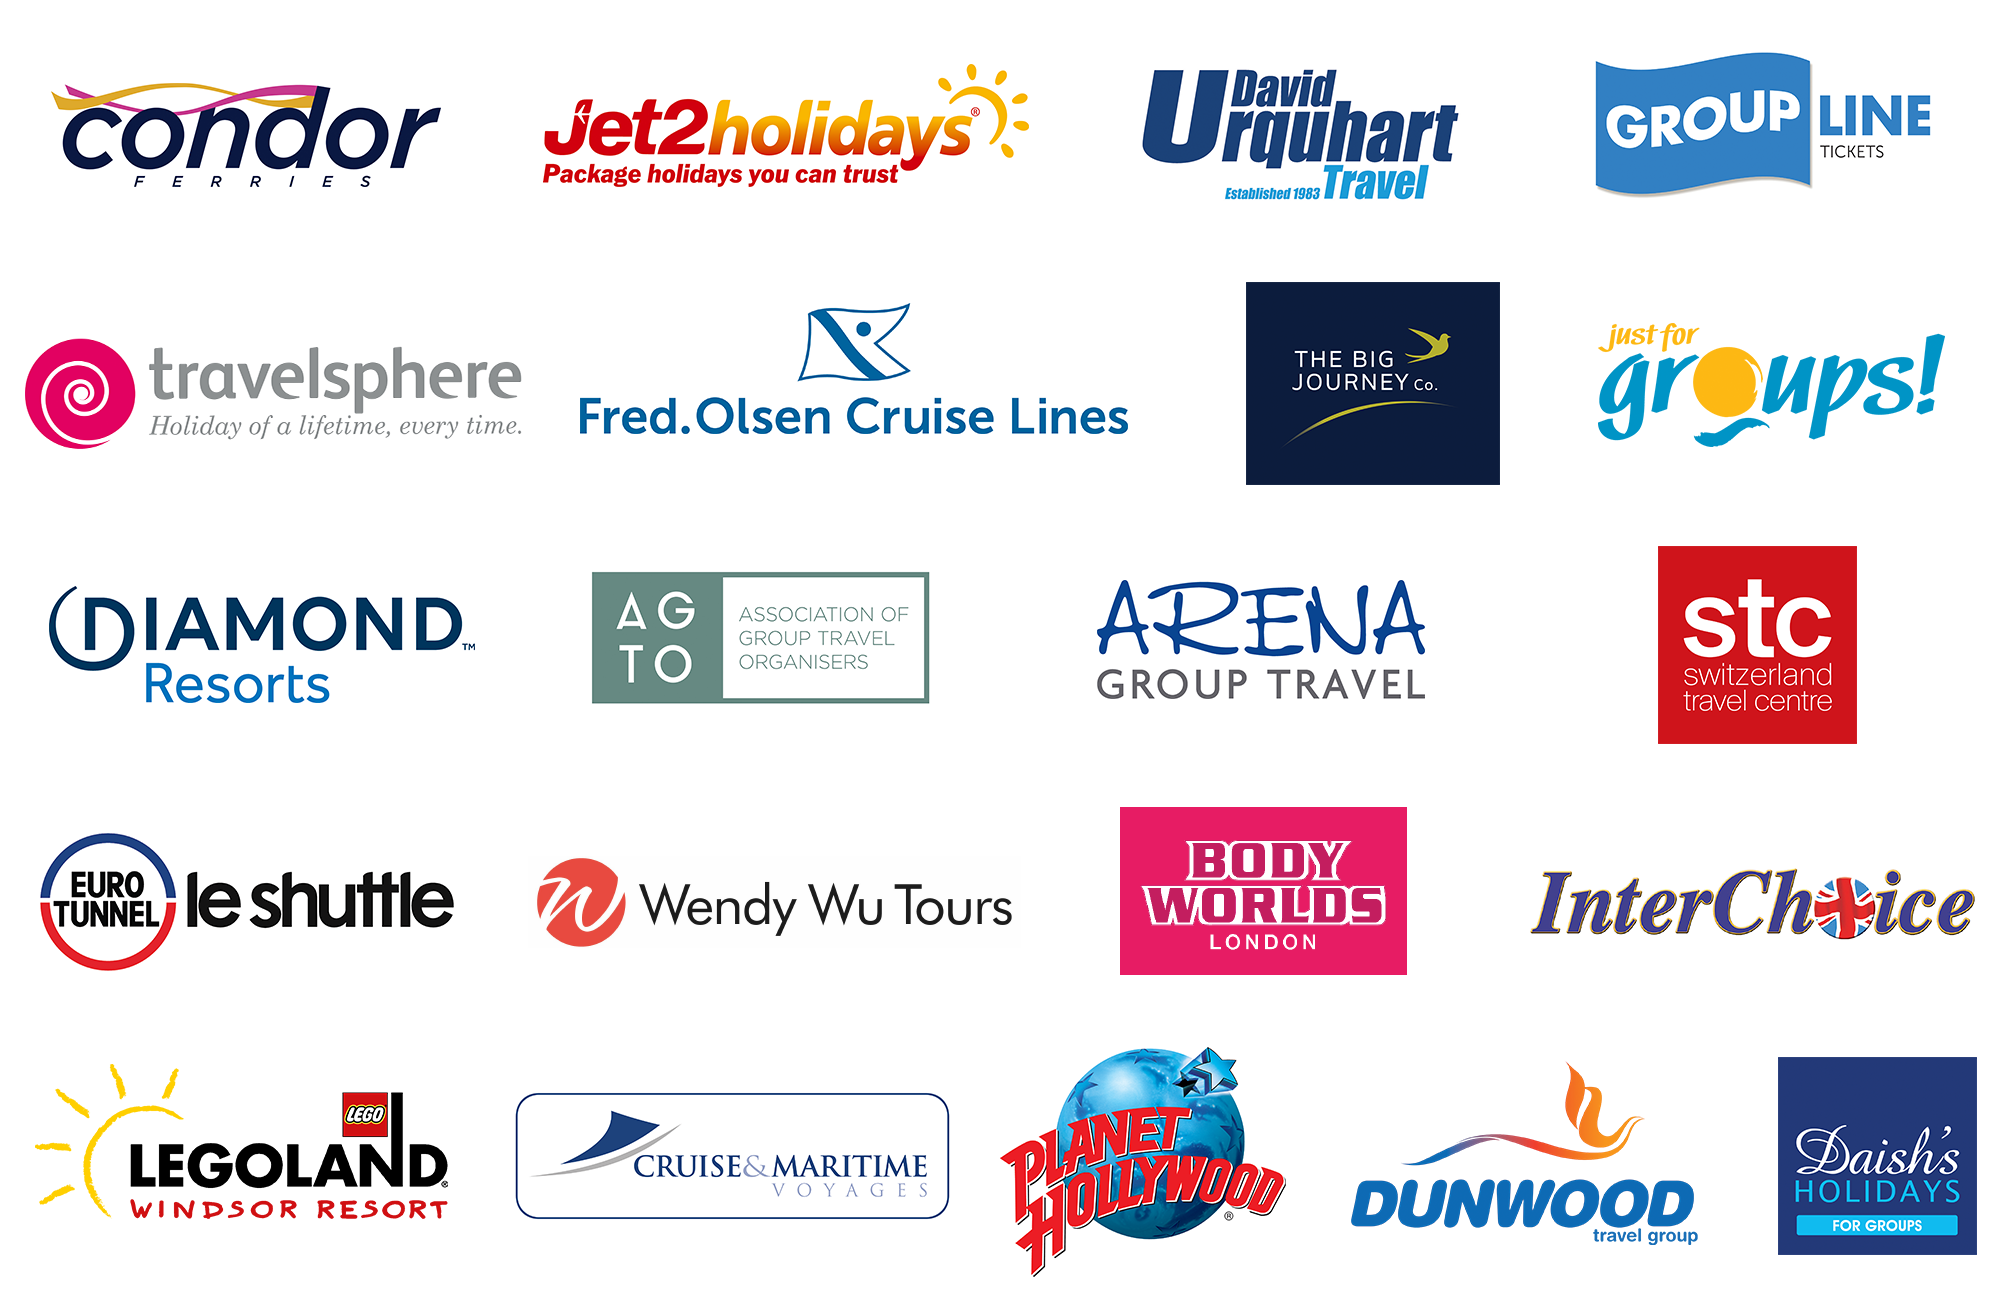 Group Leisure & Travel Awards Partners 2019